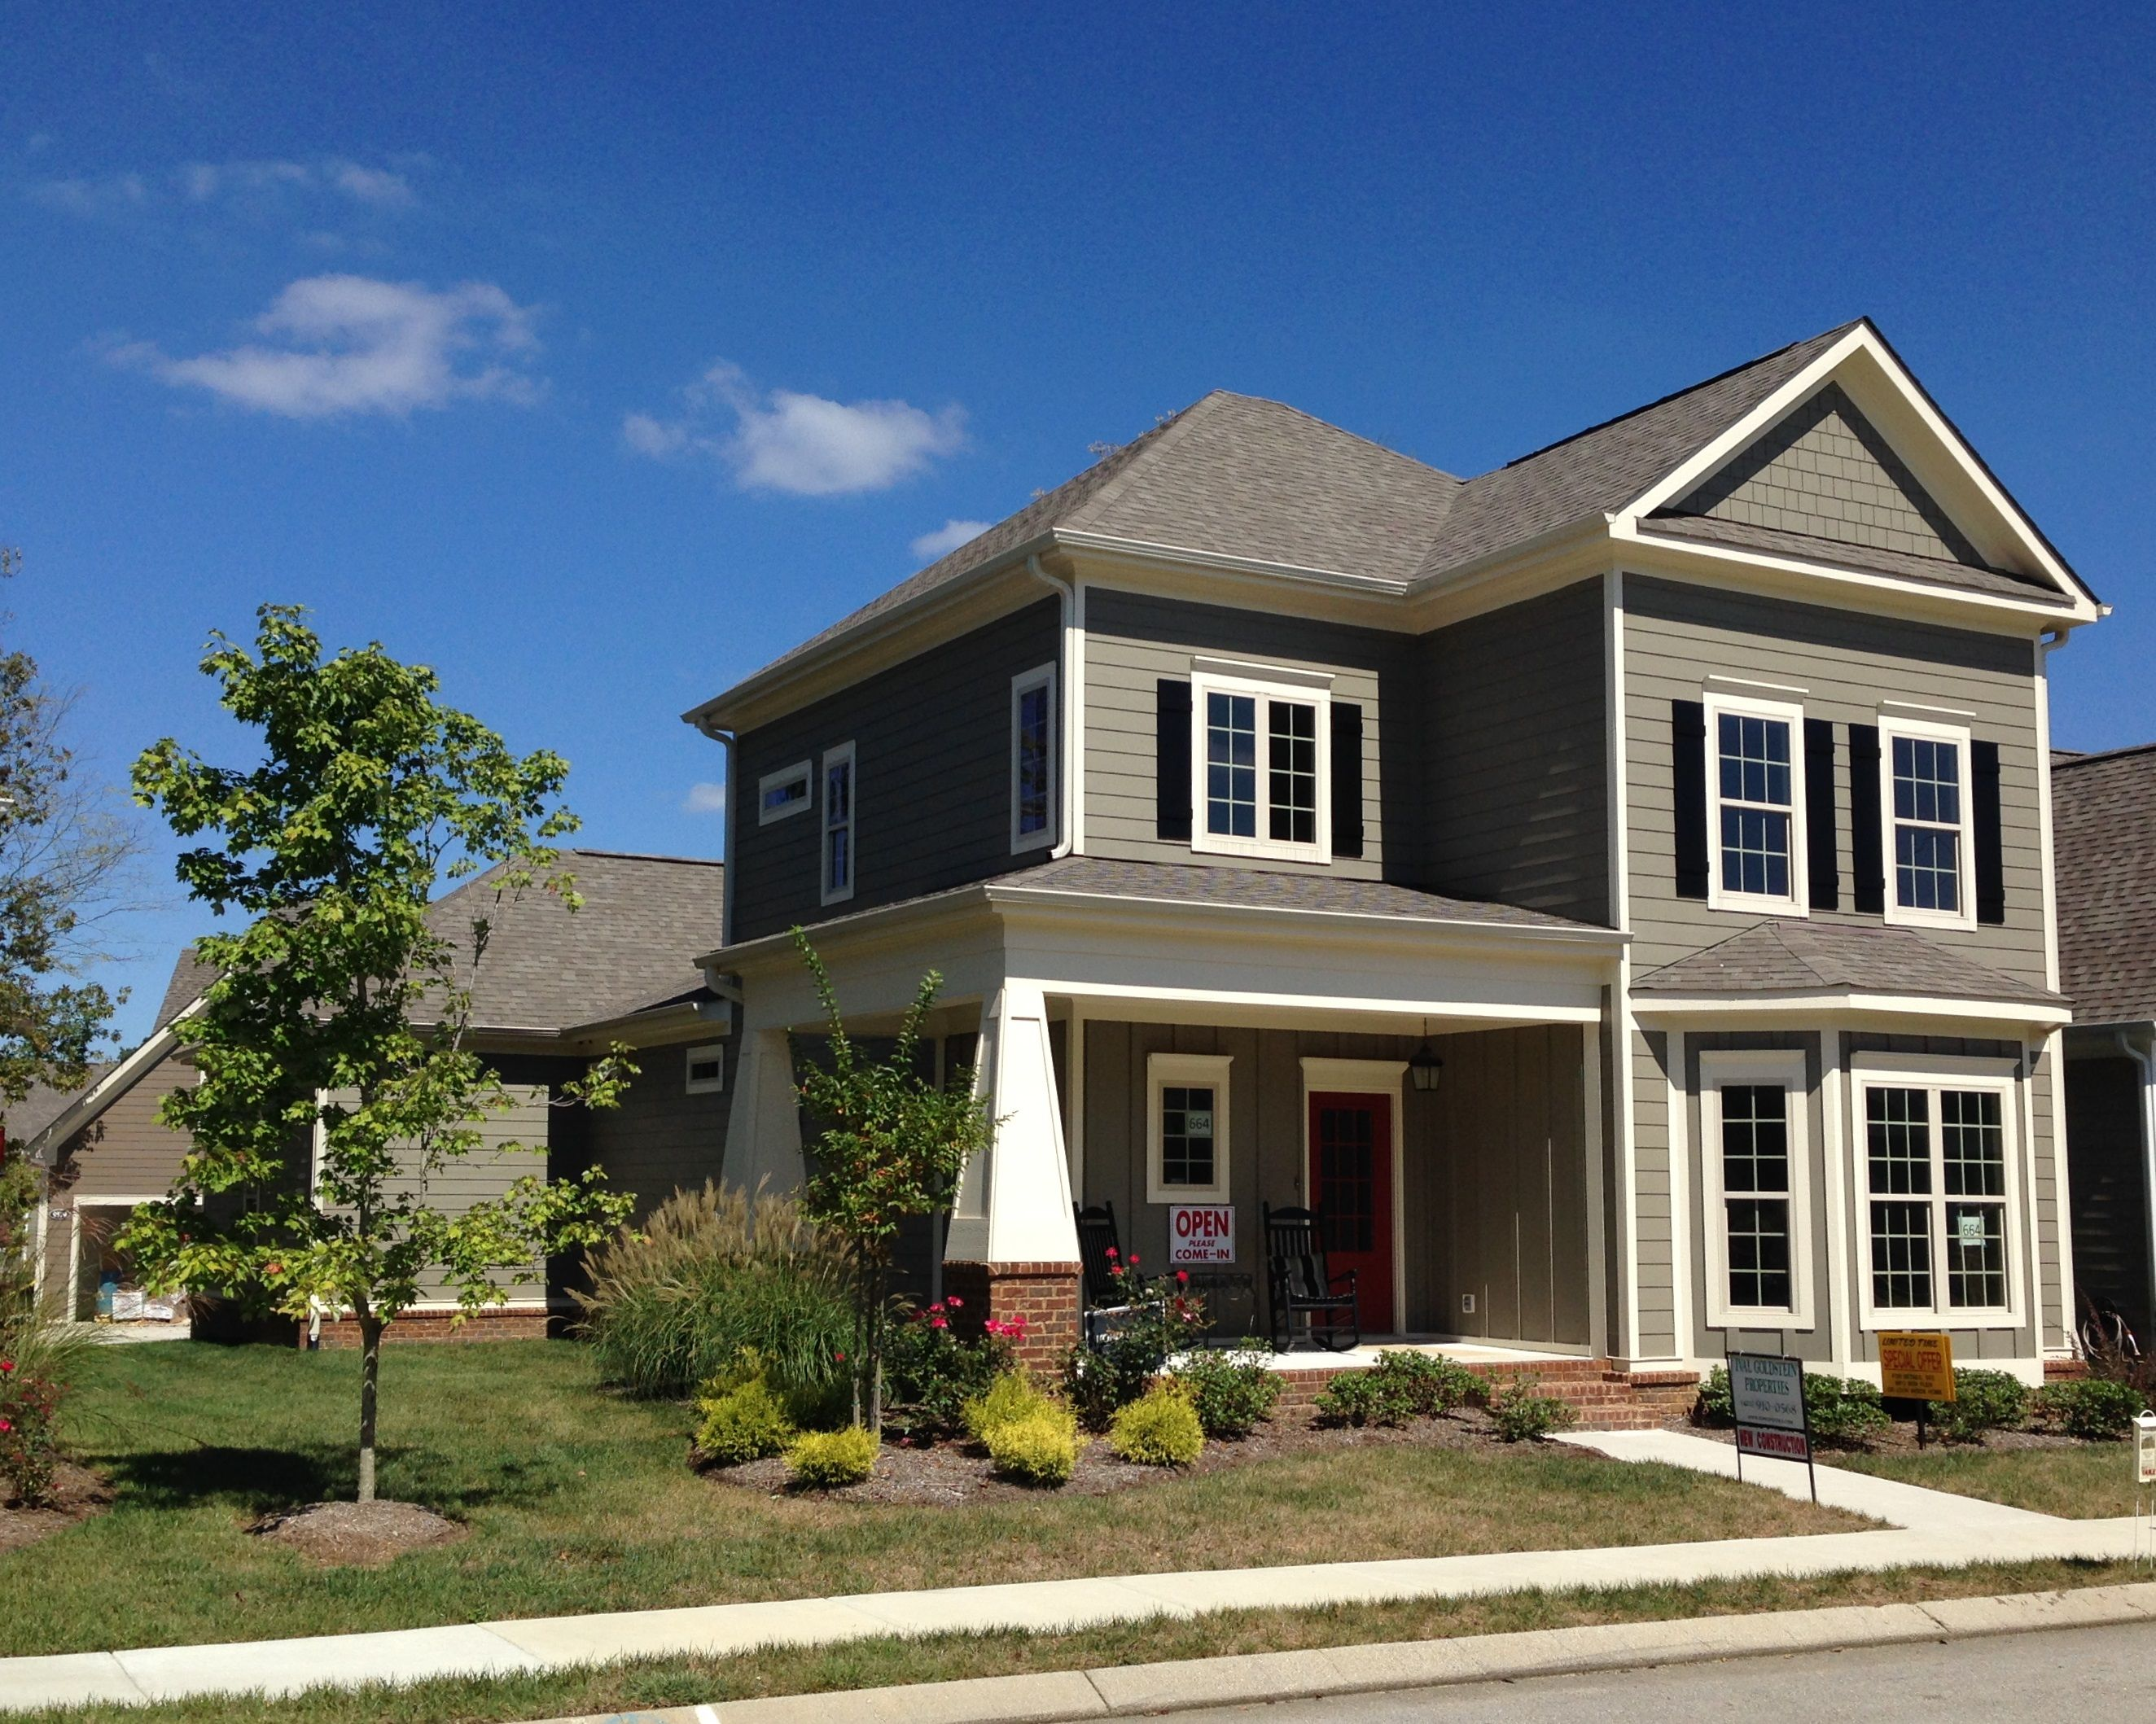 Pin By Judy Thwing On House Paint Pinterest Paint Colors Exterior Paint Colors And House